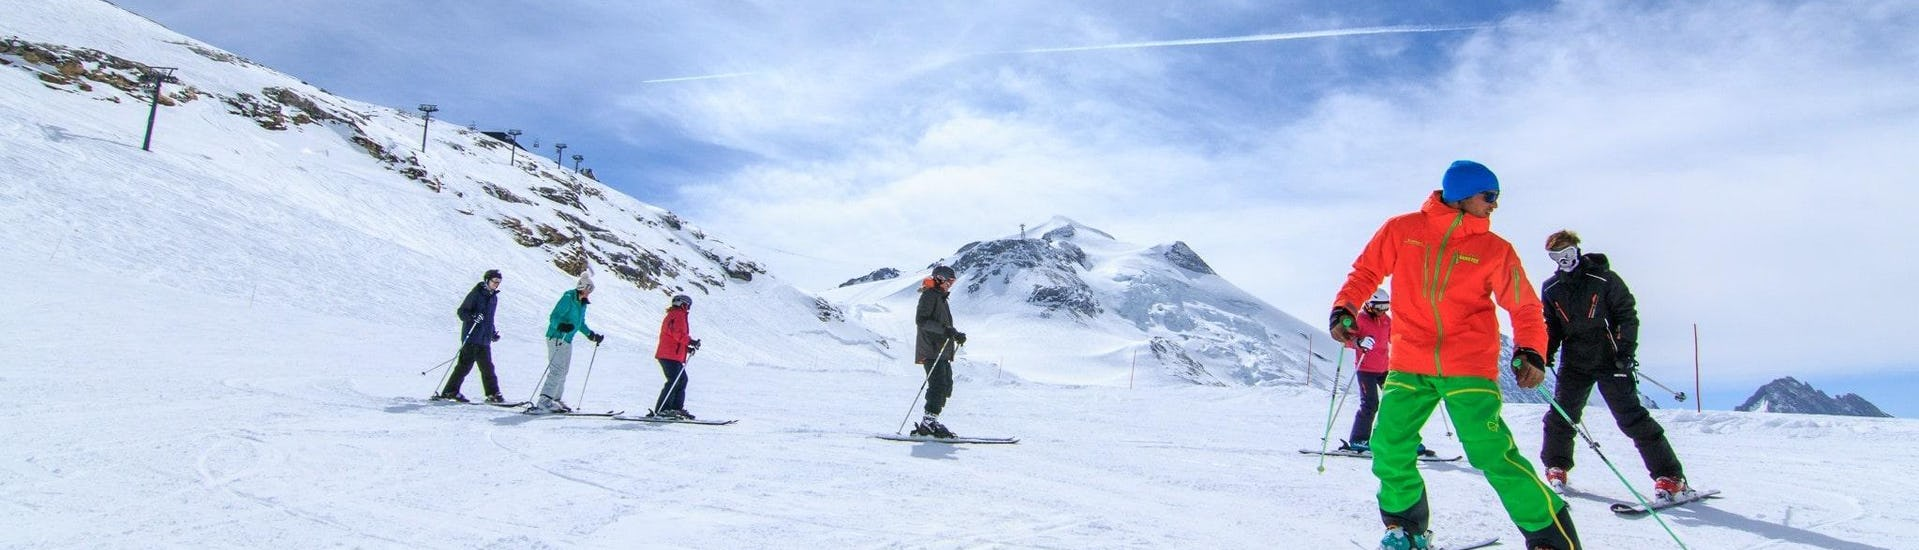 Skiers are following their instructor from the ski school Evolution 2 Tignes on a snowy slope during theirSki Lessons for Teens & Adults - Afternoon - All Levels.